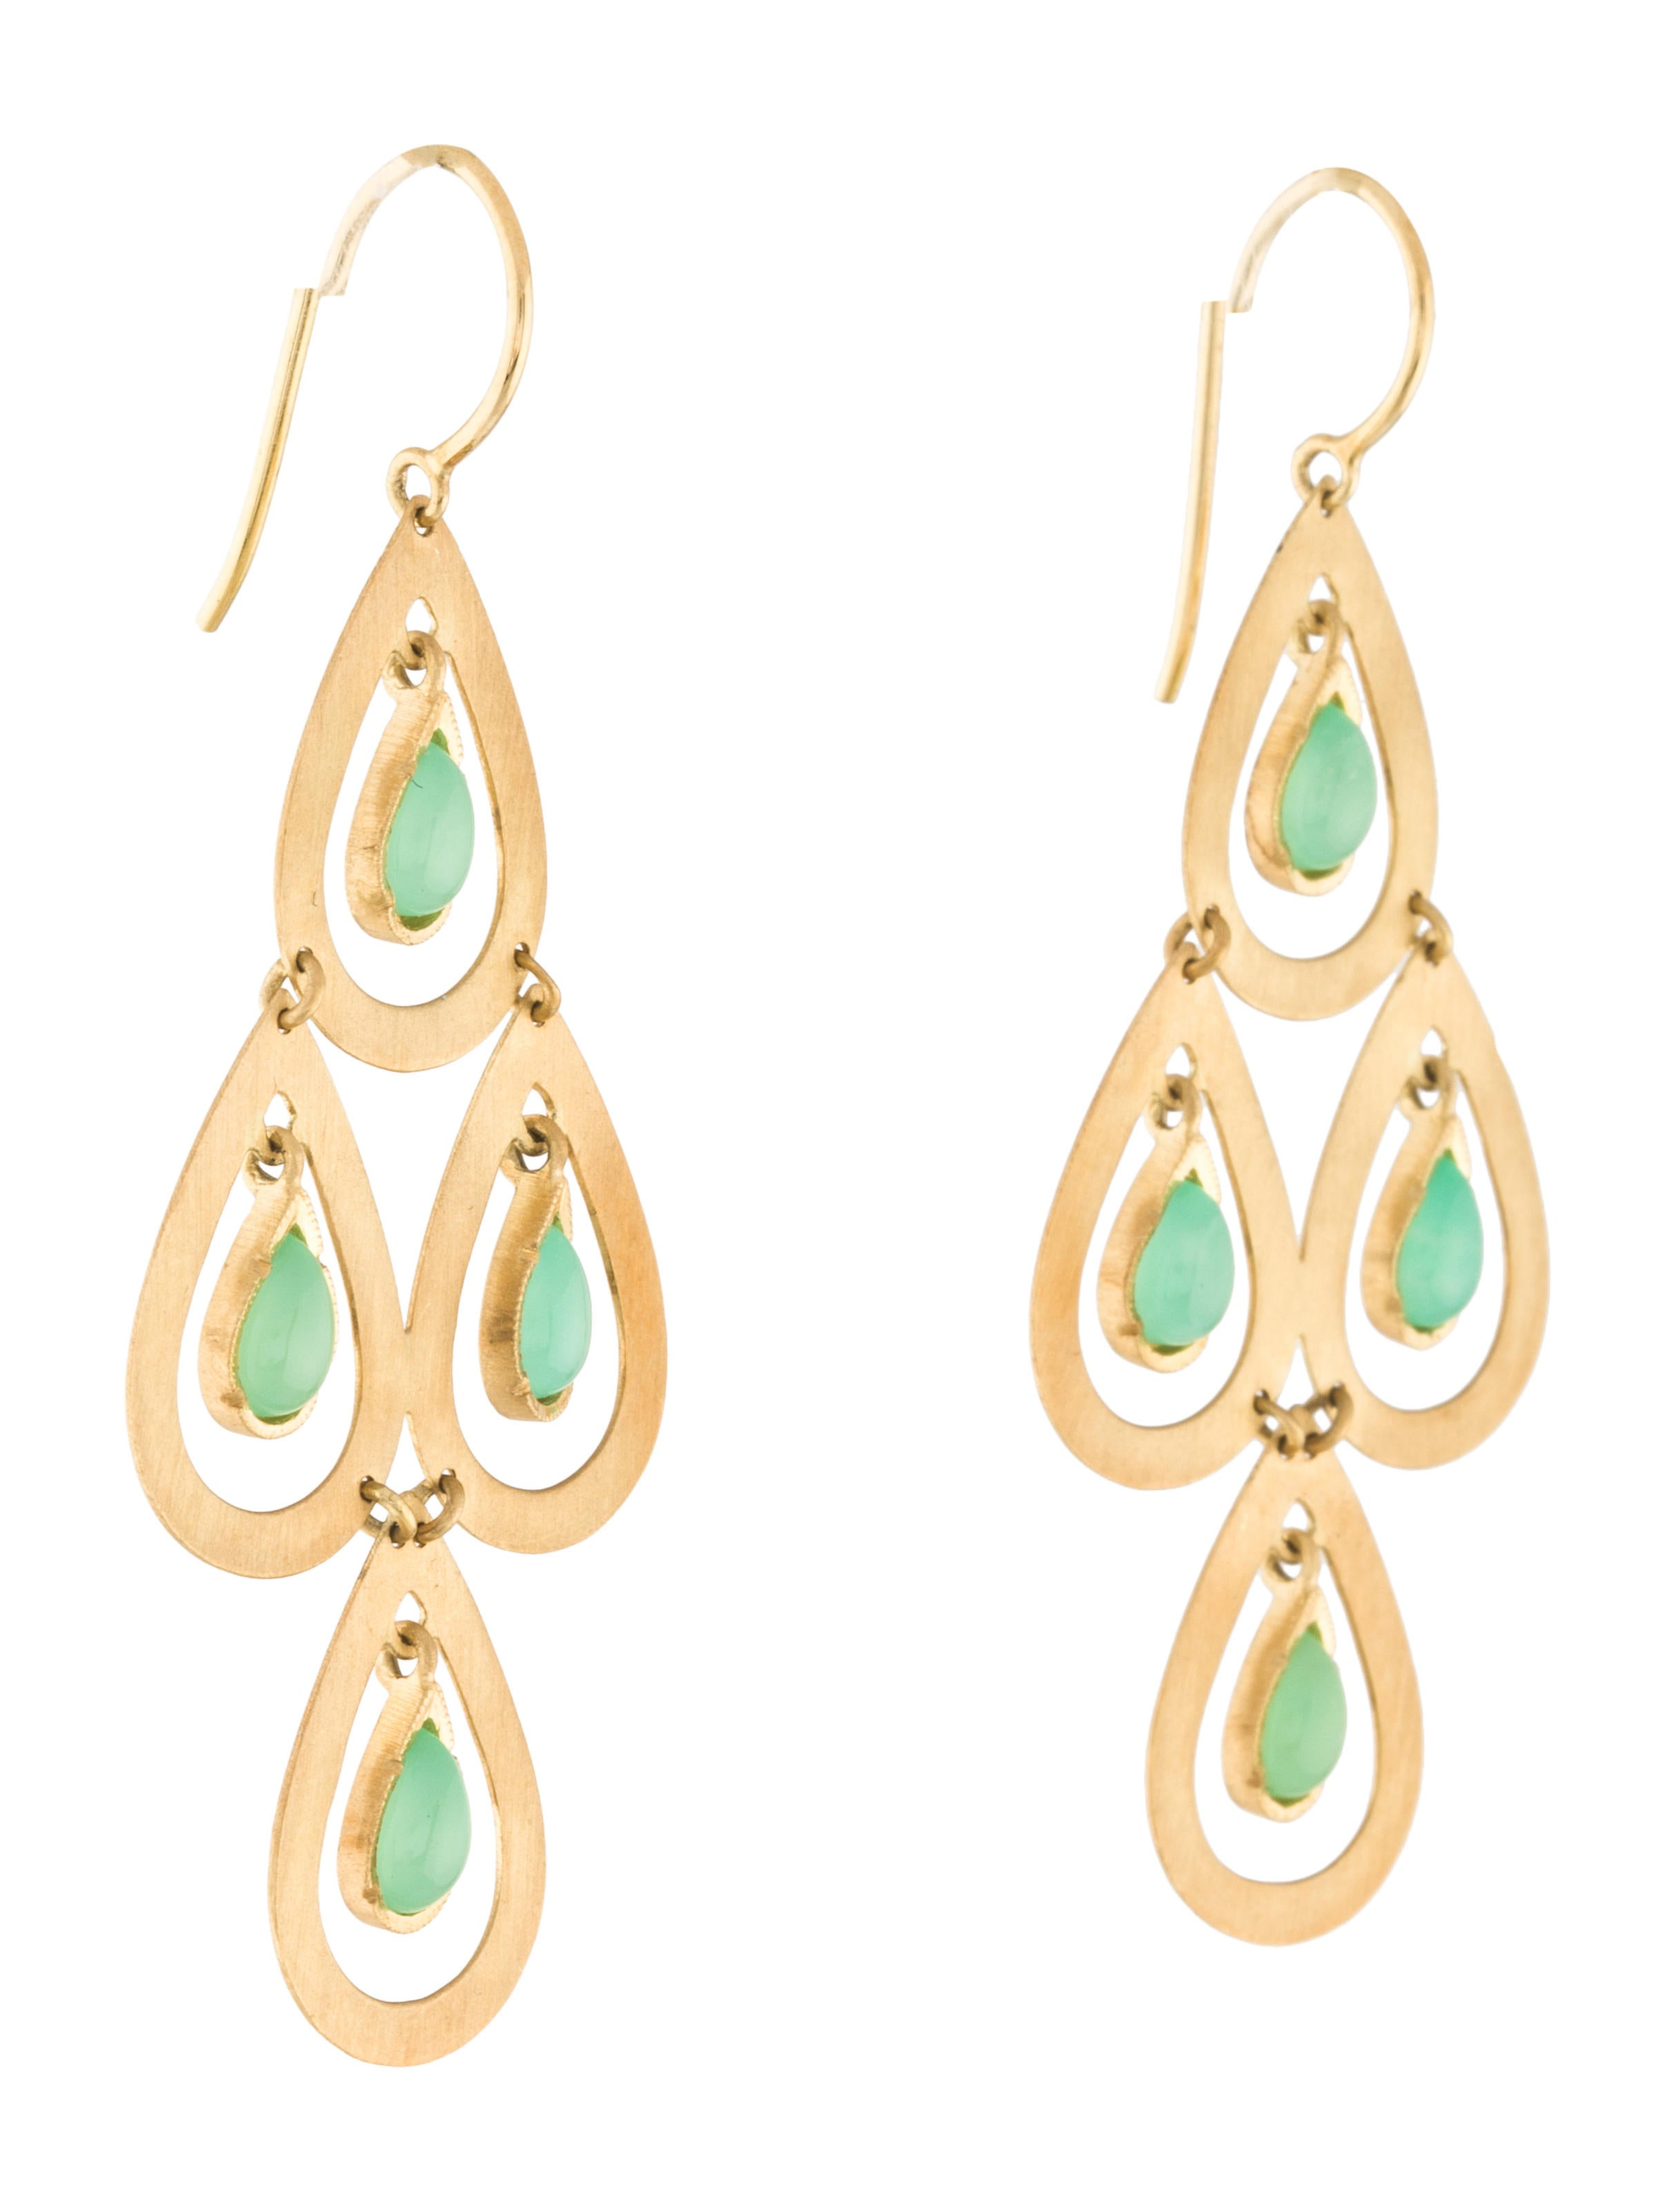 Yellow Dining Room Chairs Irene Neuwirth 18k Chrysoprase Chandelier Earrings